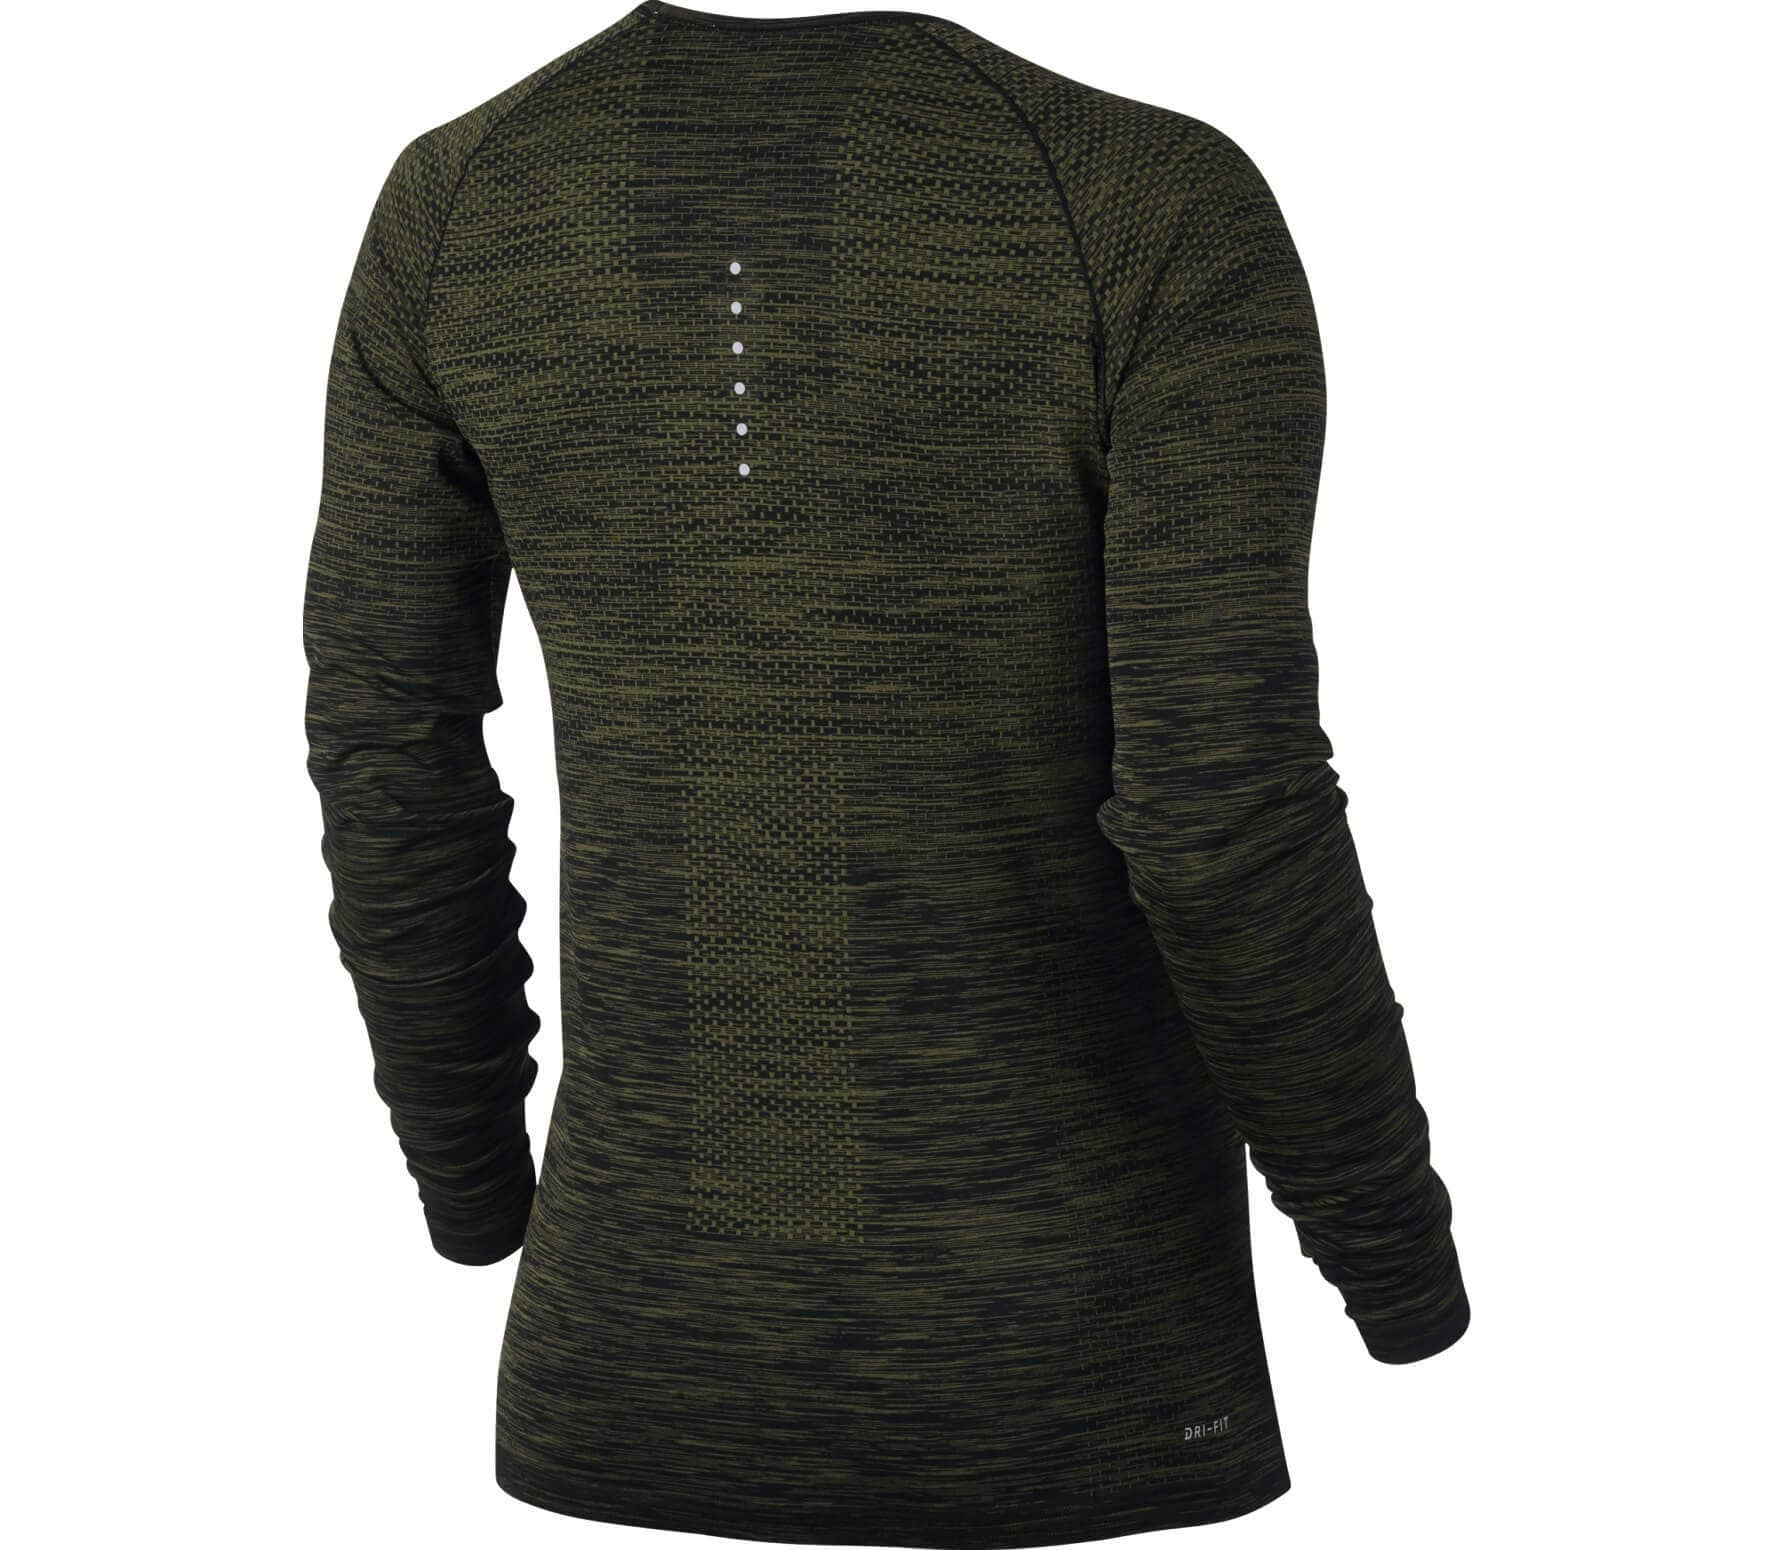 nike dri fit knit longsleeve women 39 s running top black. Black Bedroom Furniture Sets. Home Design Ideas